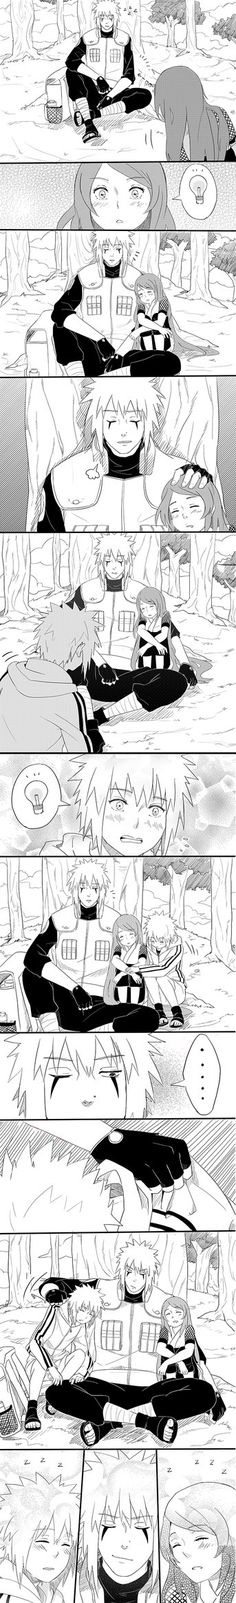 This is WAY too stinkin cute!!!  7 by warable on deviantART be the cutest thing i've ever seen !! <3 naruto